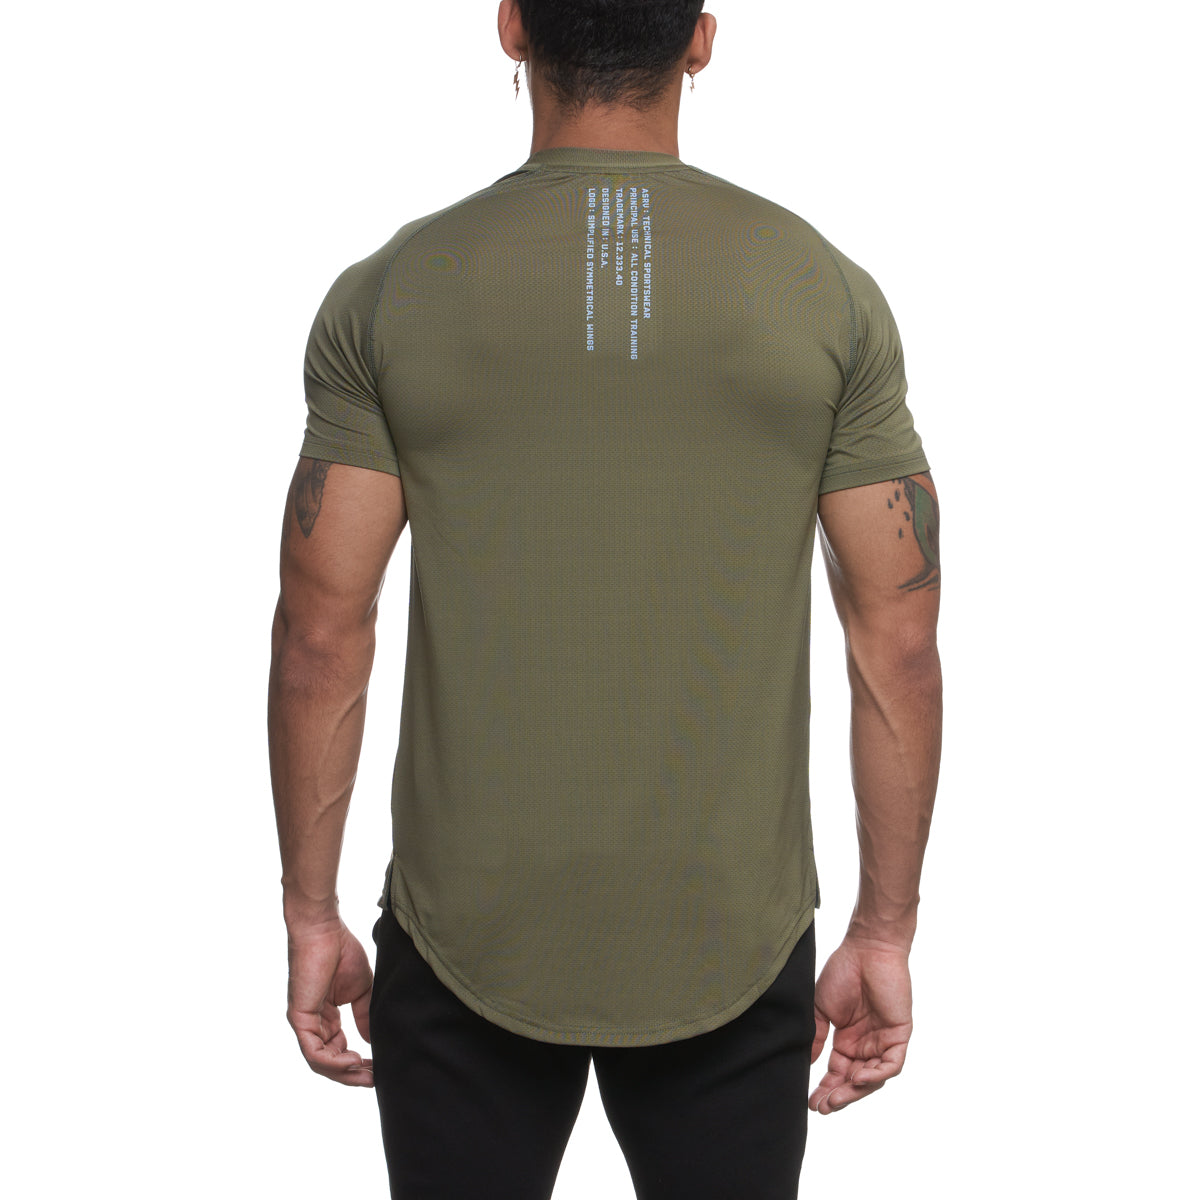 0164. Silver-Lite® Established Tee - Olive